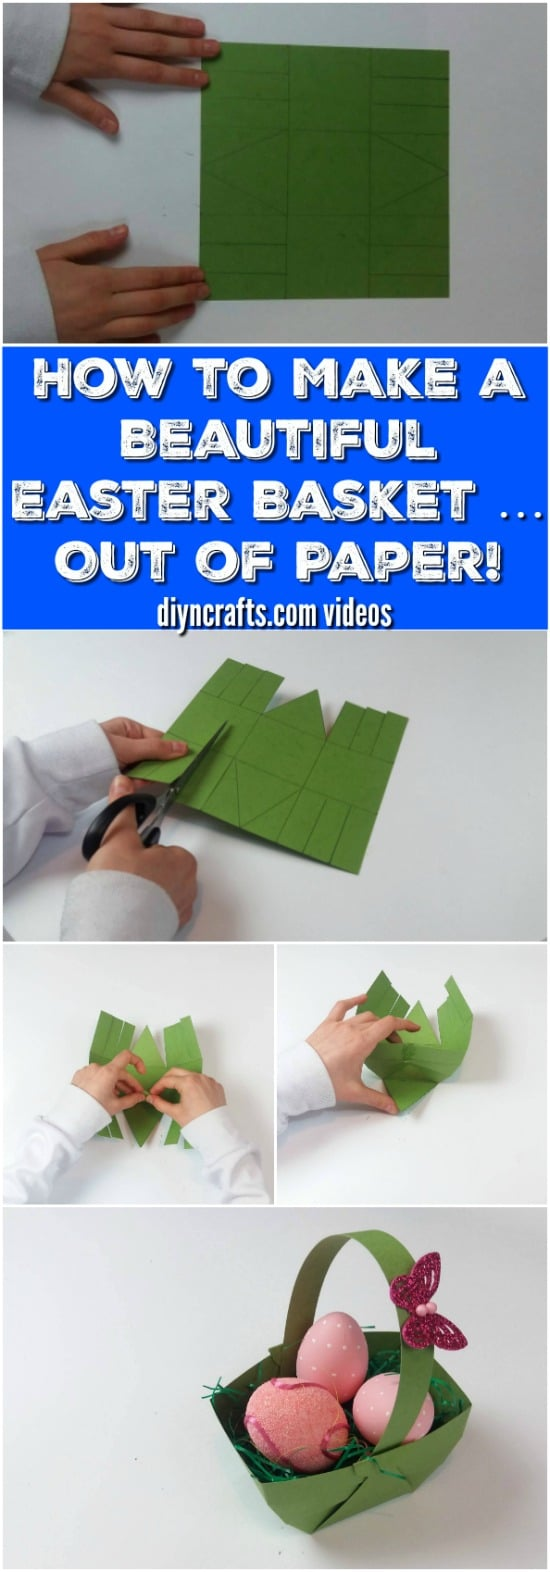 How To Make A Flower Paper Basket : Here is how to make a beautiful easter basket out of